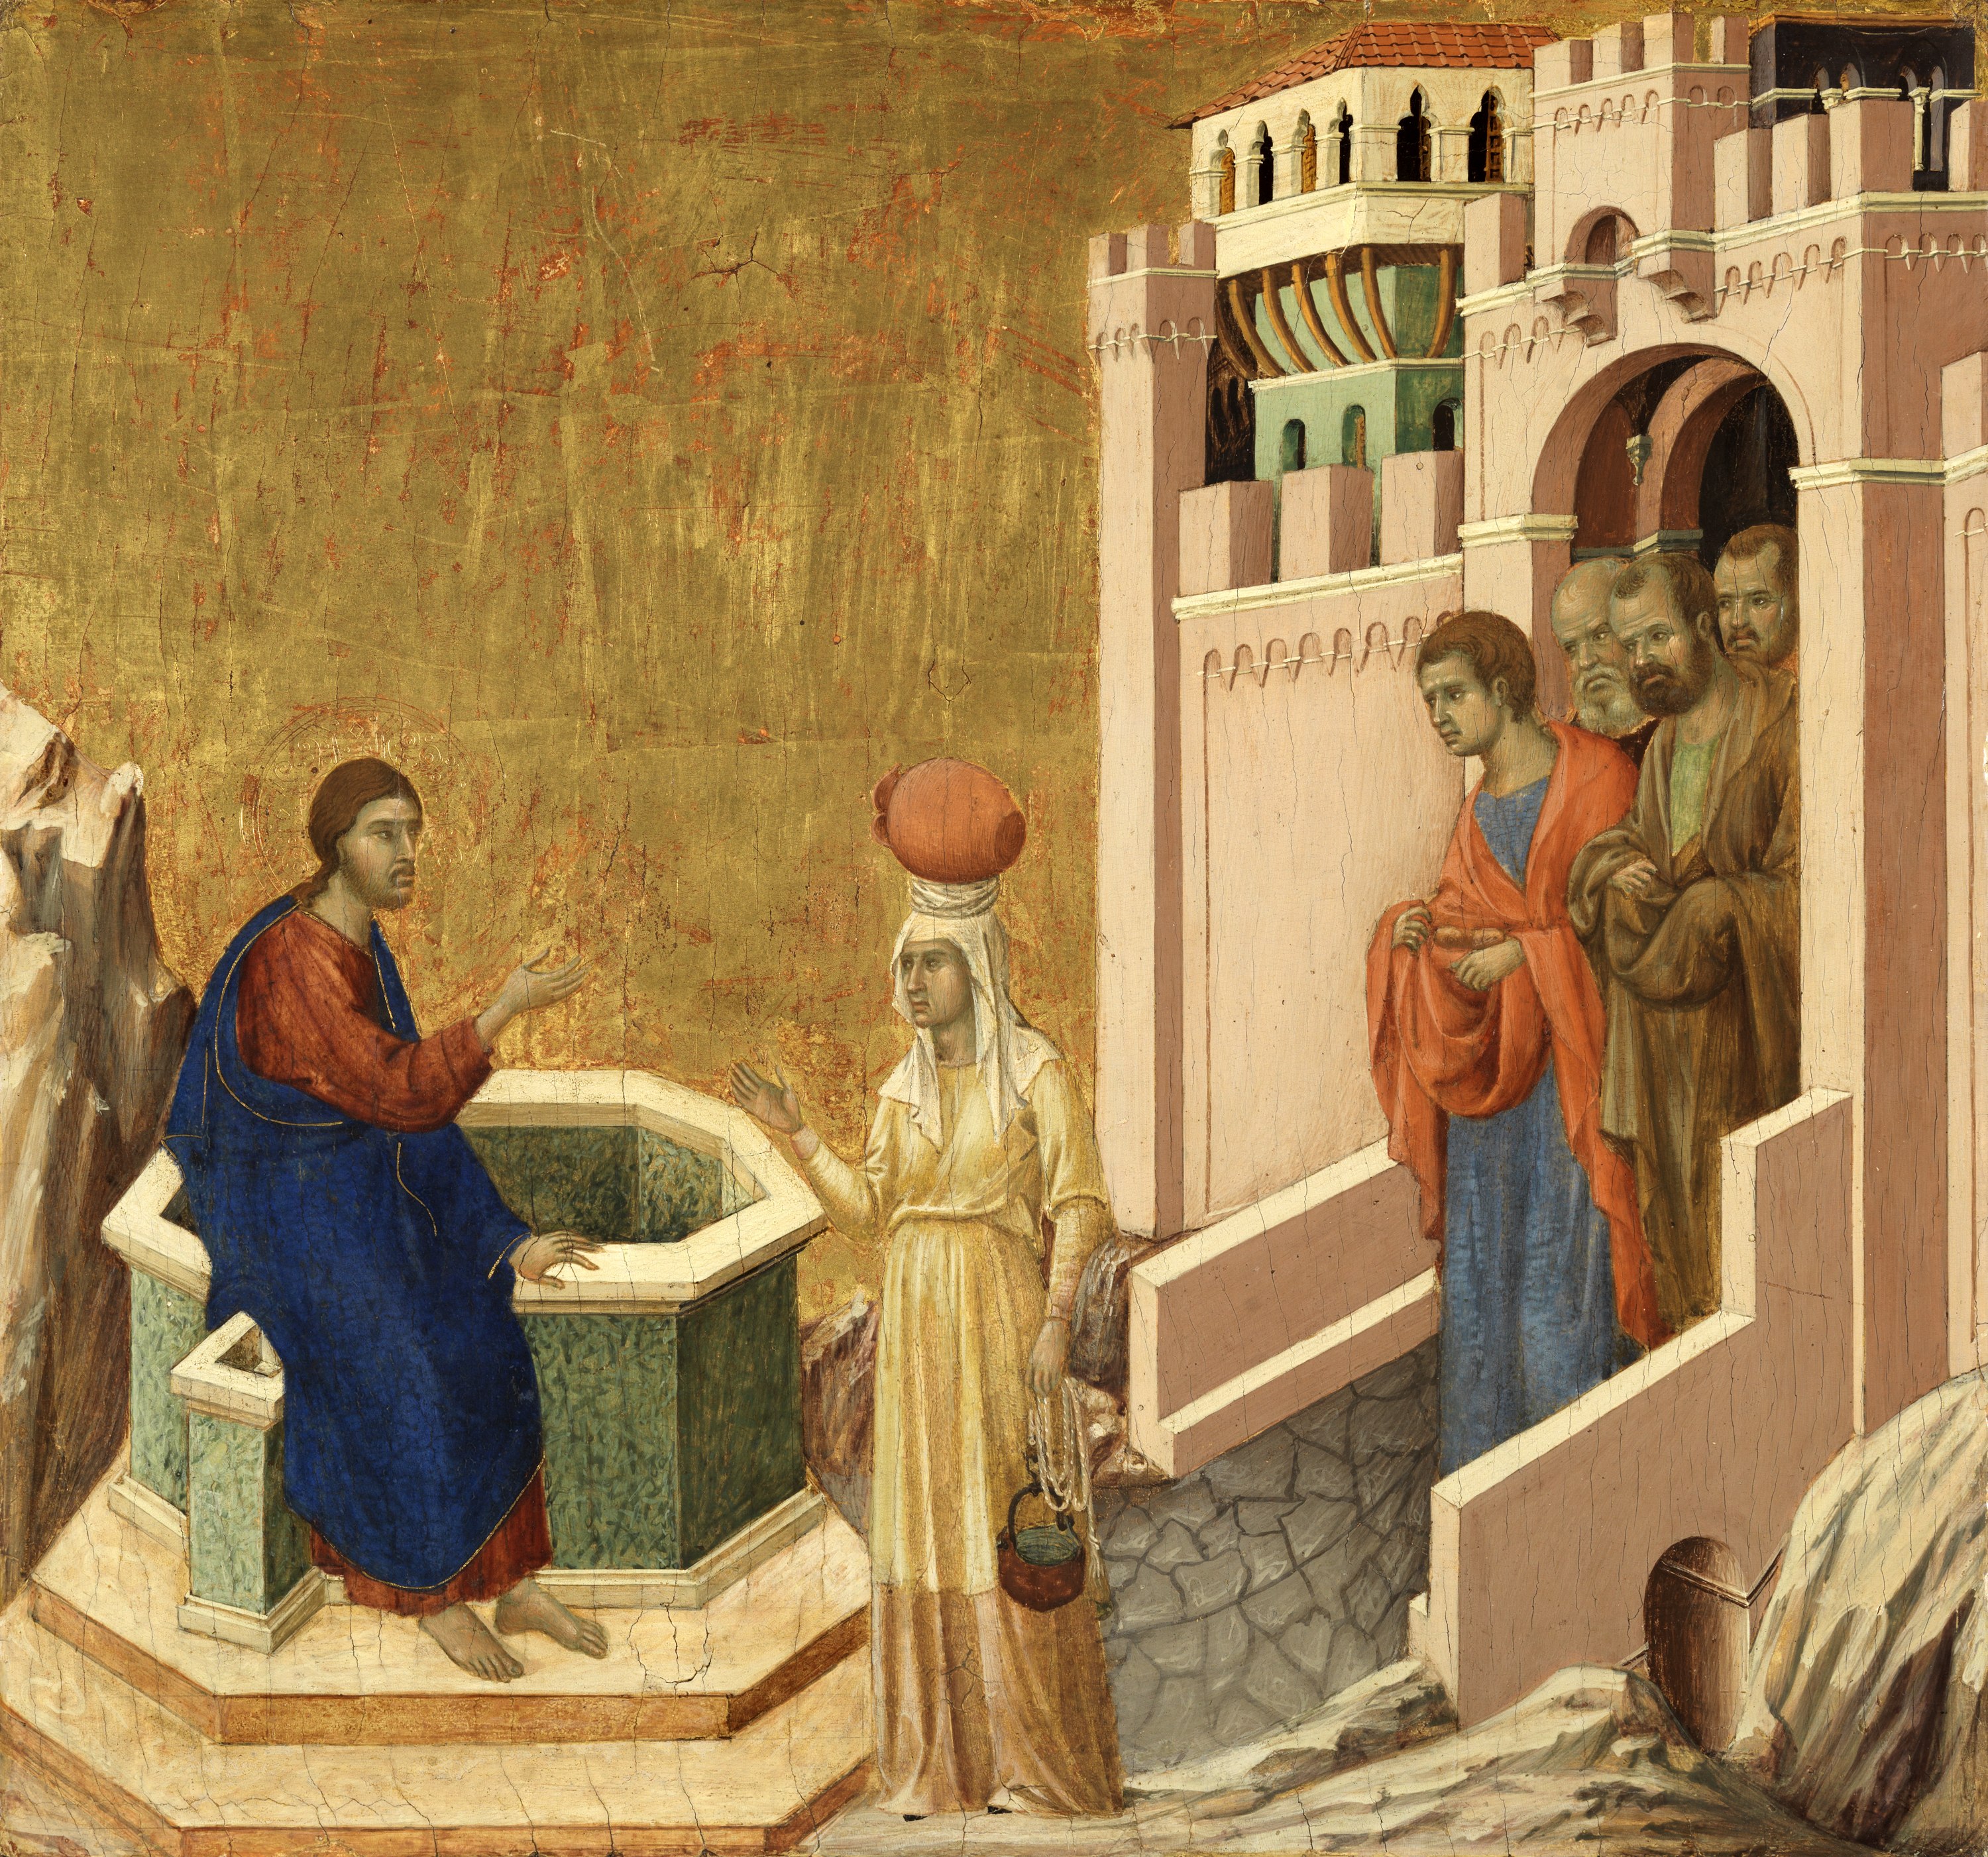 The story of the samaritan woman at the well